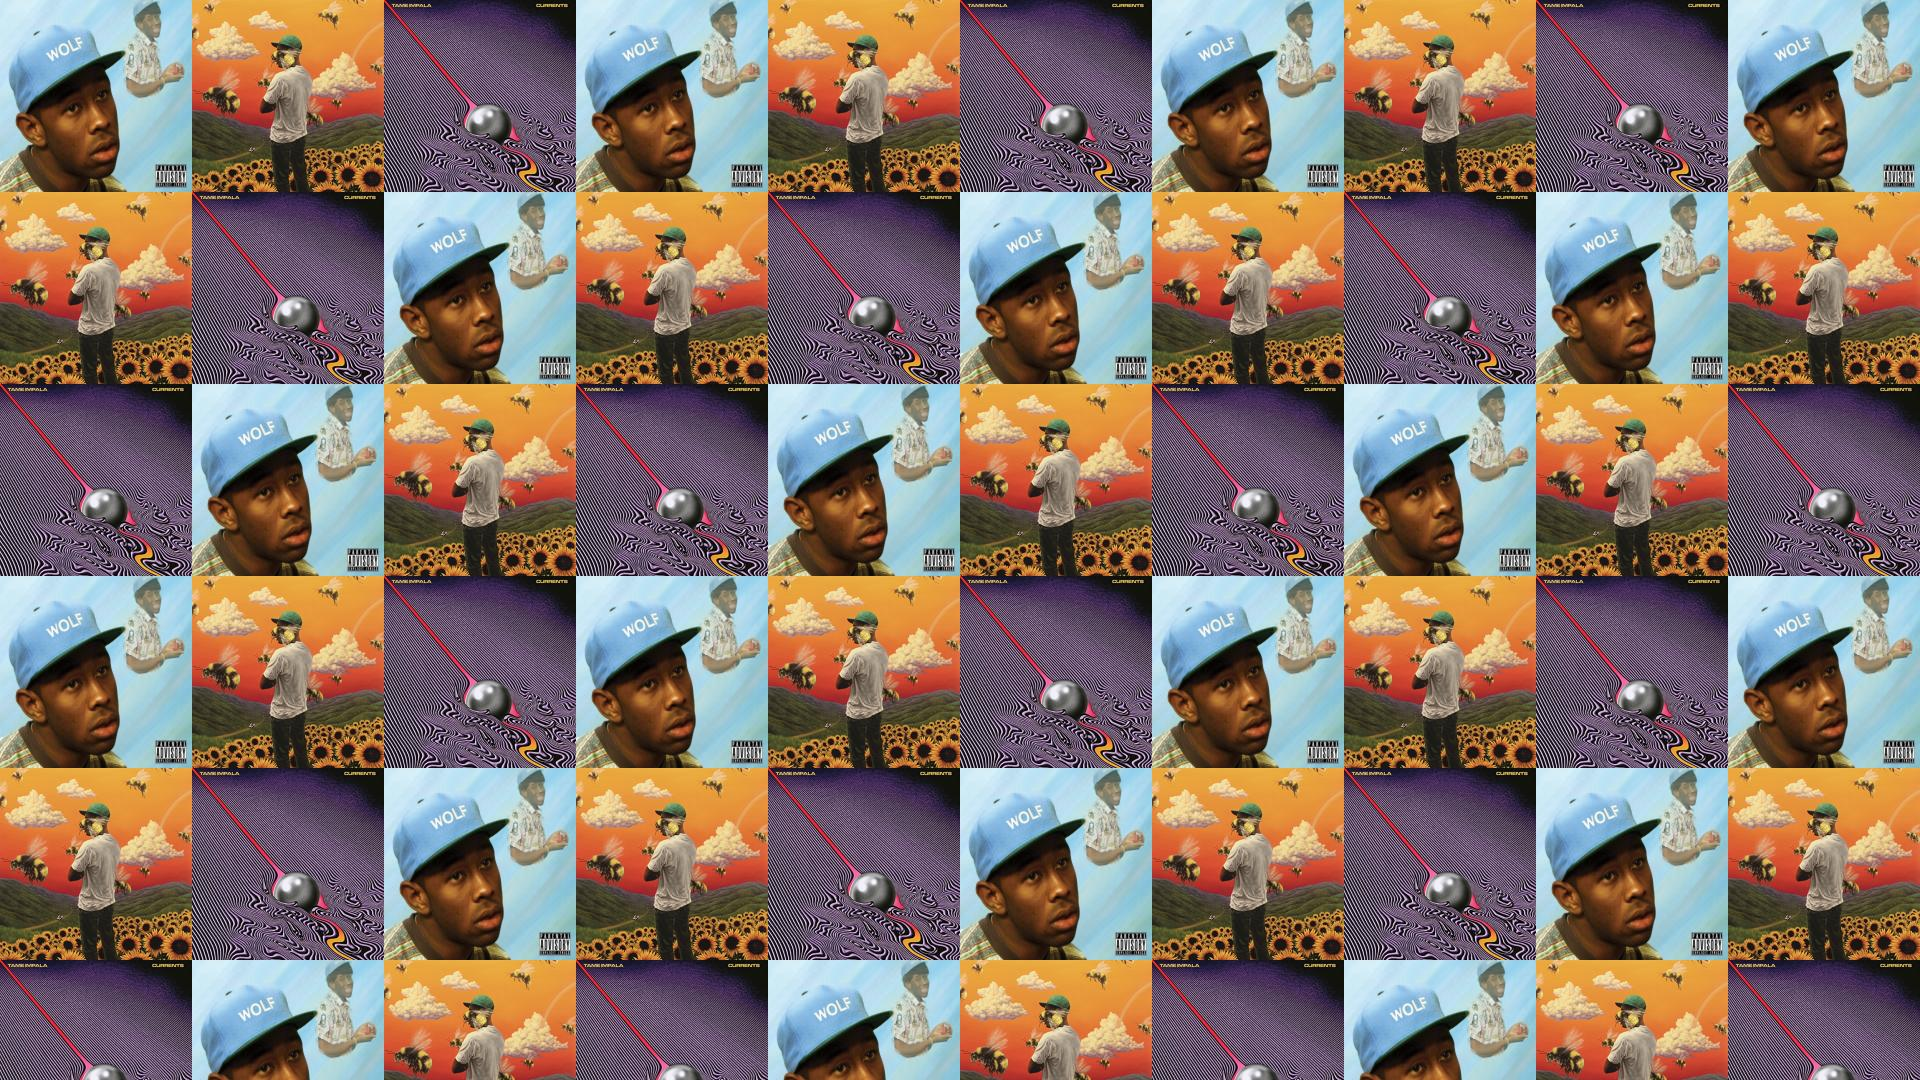 Tyler Creator Wolf Flower Boy Tame Impala Wallpaper Tiled